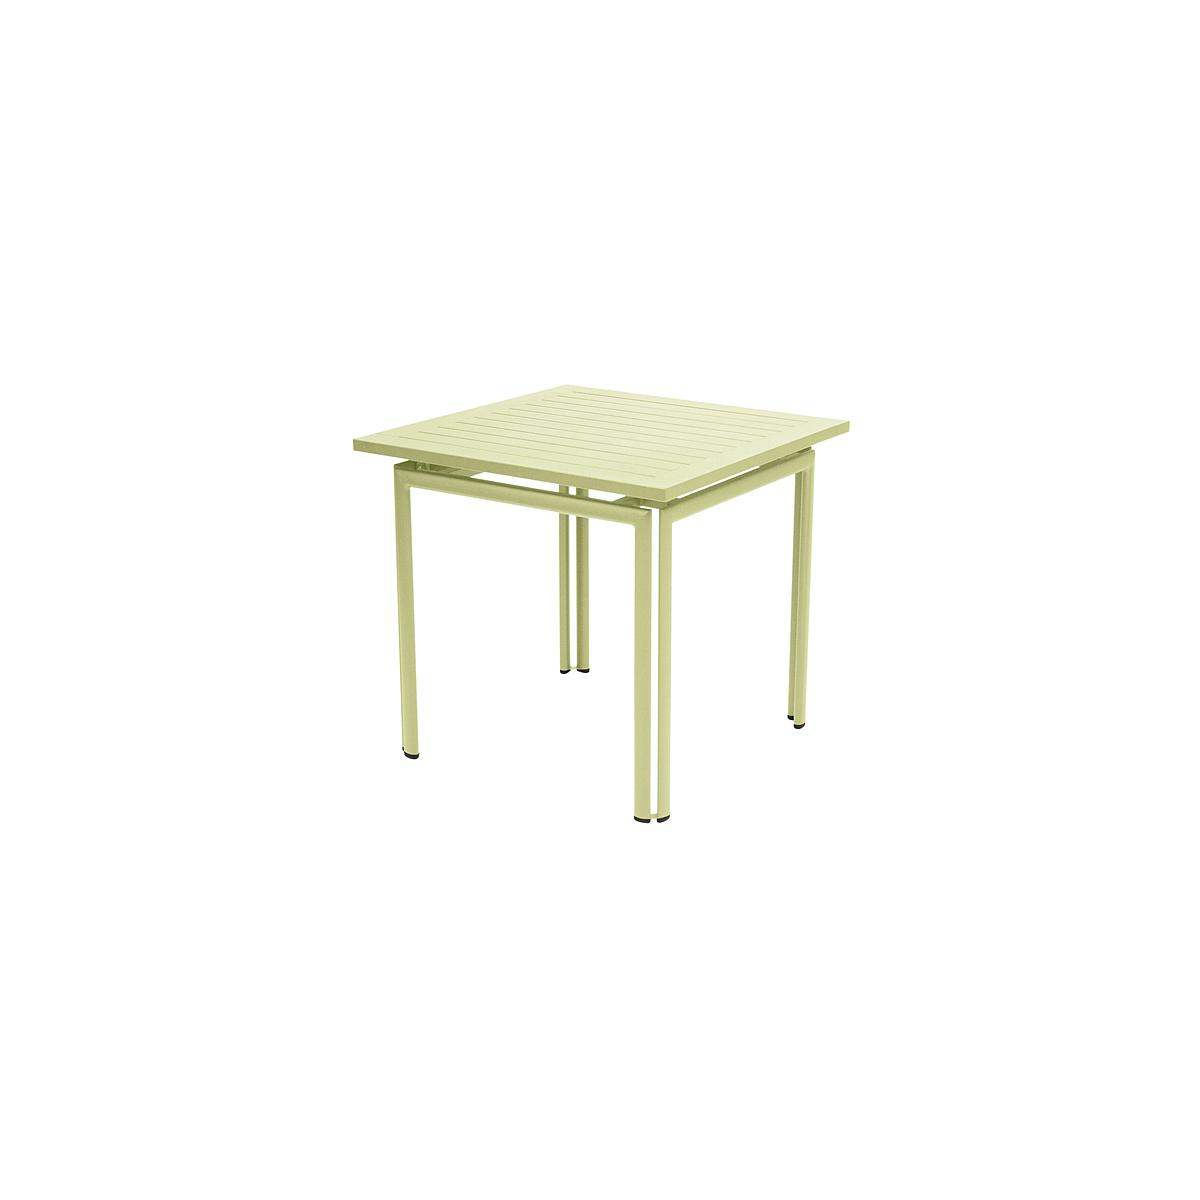 COSTA by Fermob Table 80x80 cm tilleul